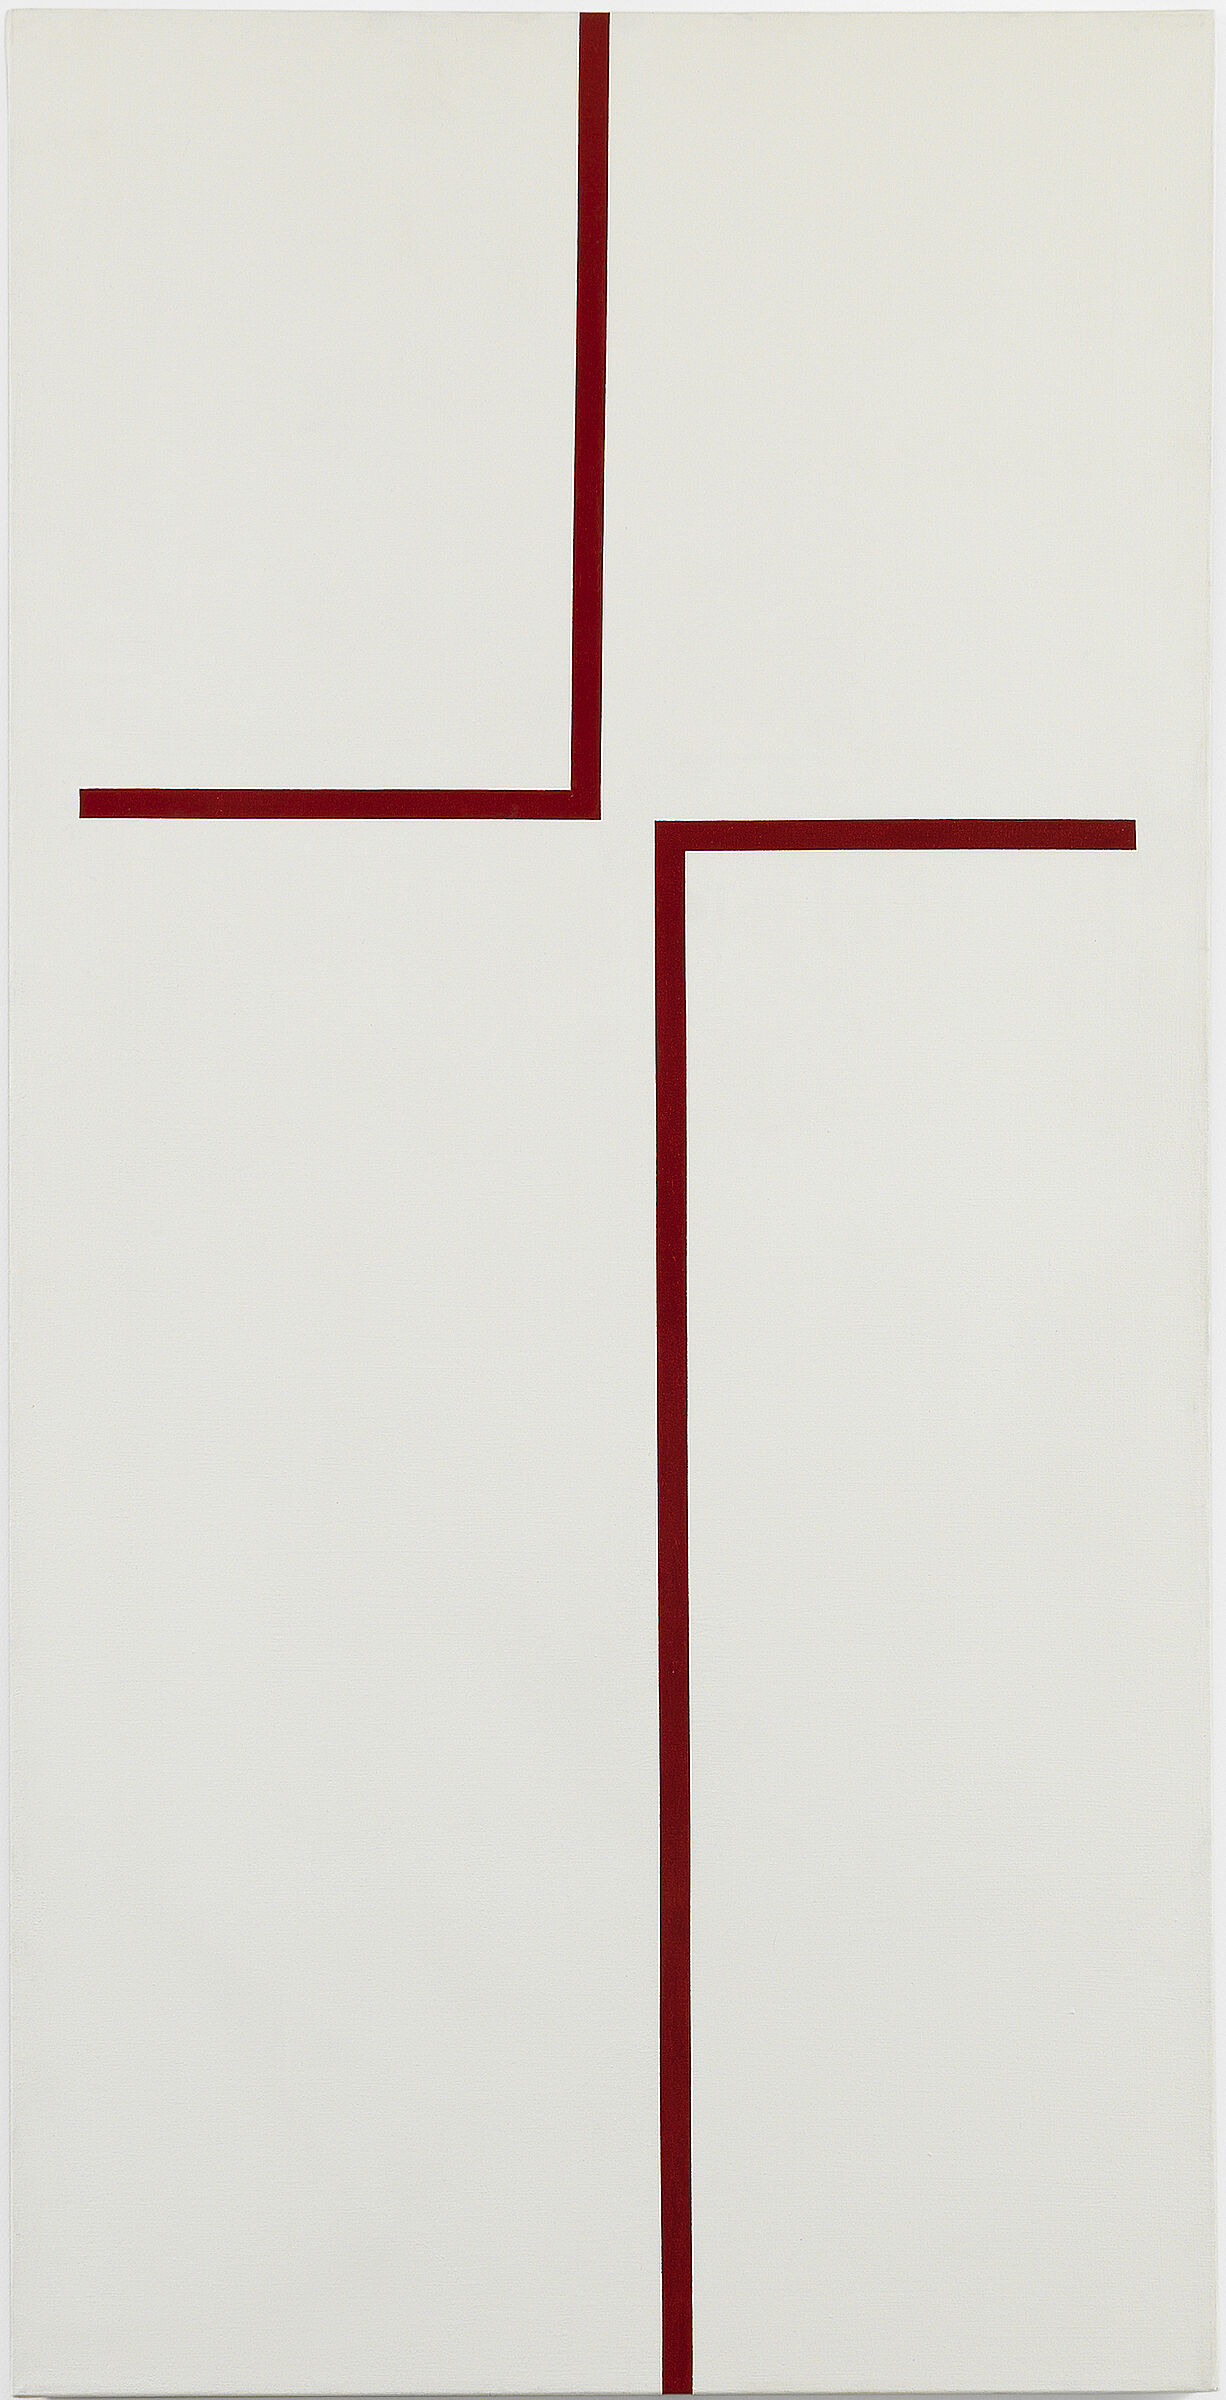 A white artwork with two maroon lines running through it.